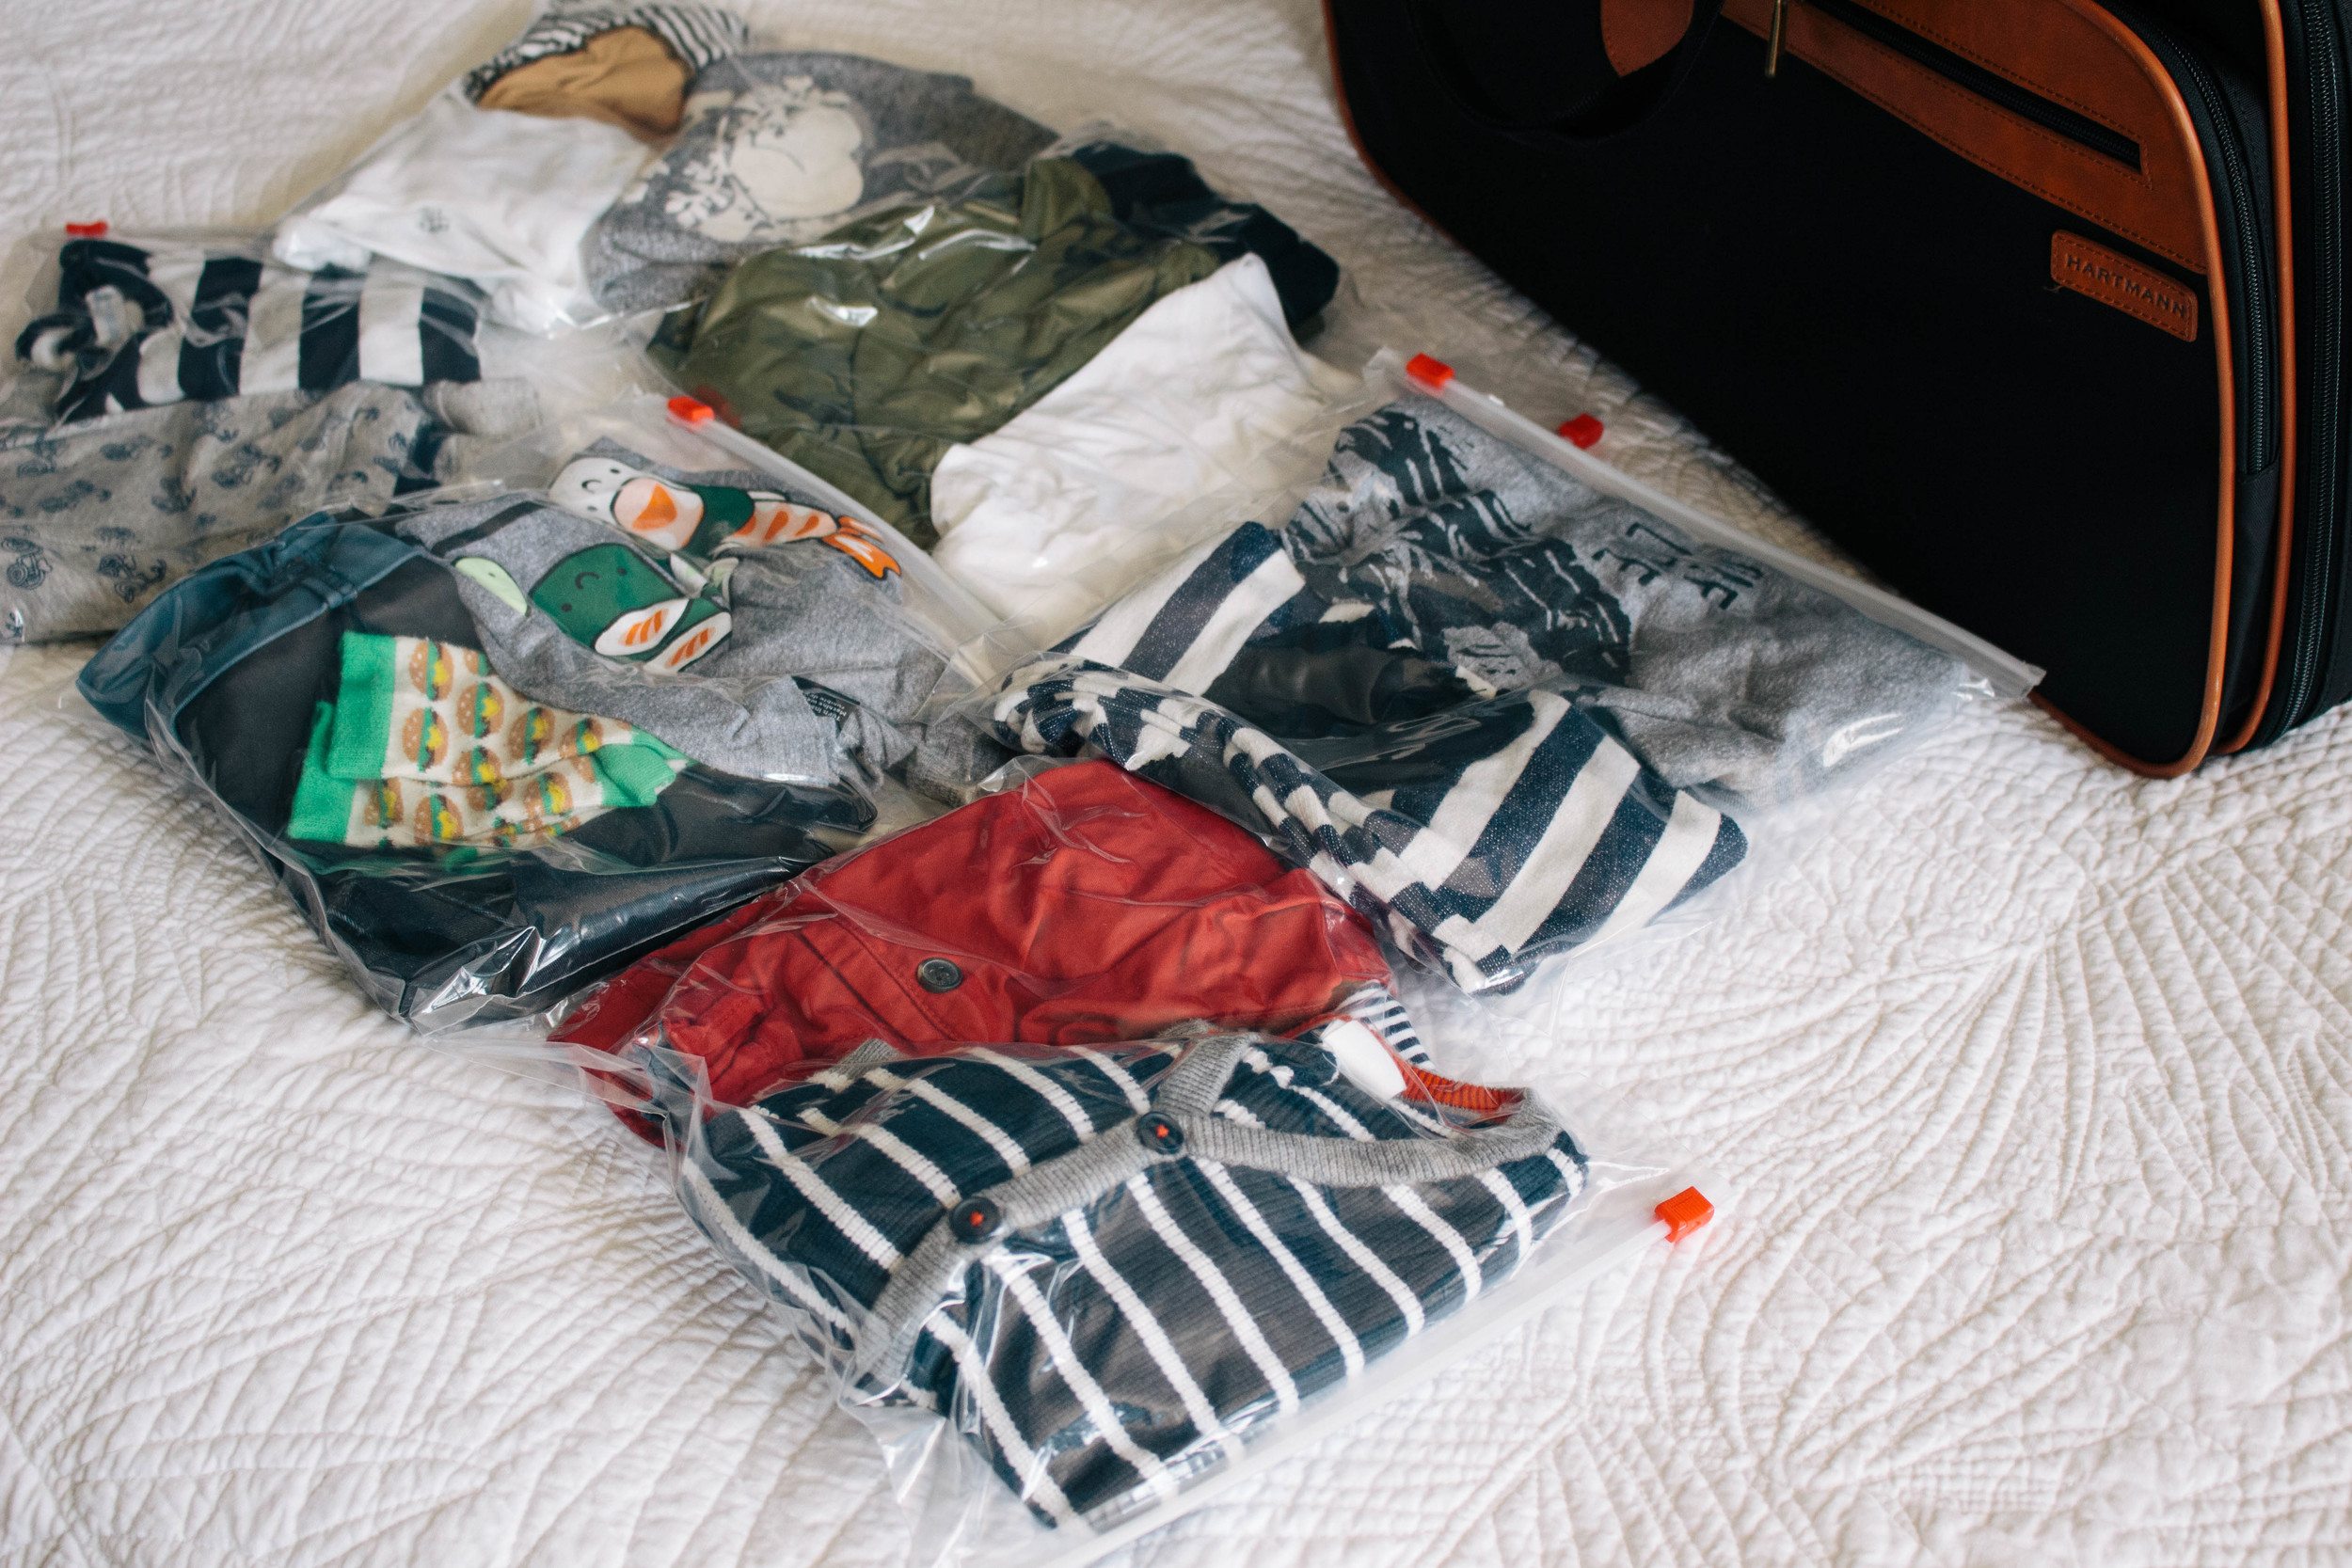 packing with kids, saving space while packing, ziplock bags